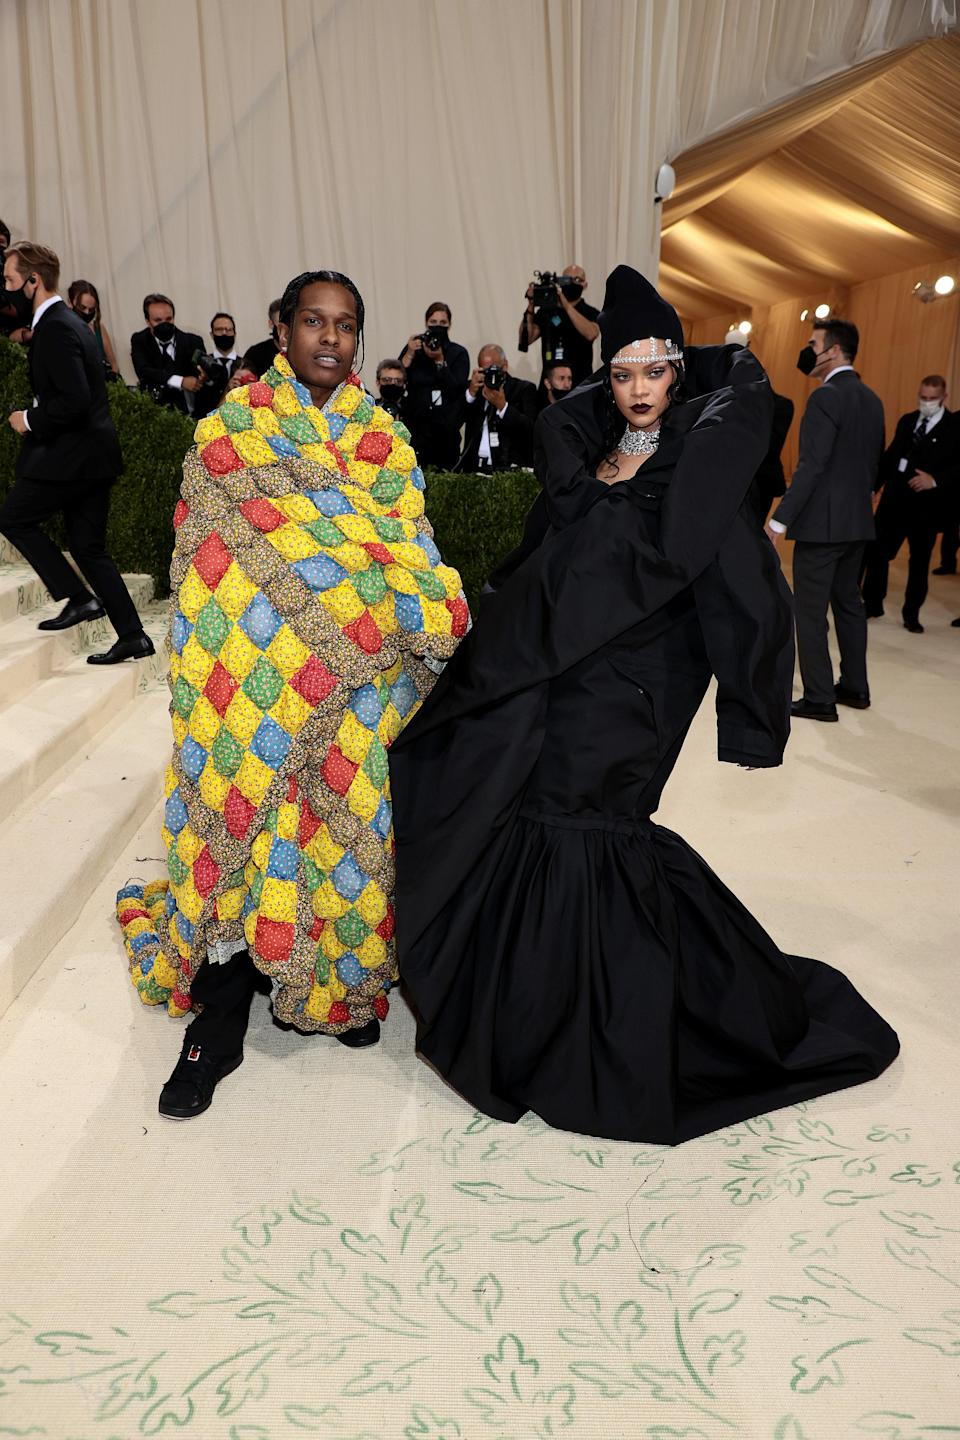 Rihanna may have shown up in Balenciaga, but her casual look was a couture ode to American streetwear. Meanwhile, A$AP wore a quilt by L.A. label ERL, representing the patchwork of cultures that make up America.